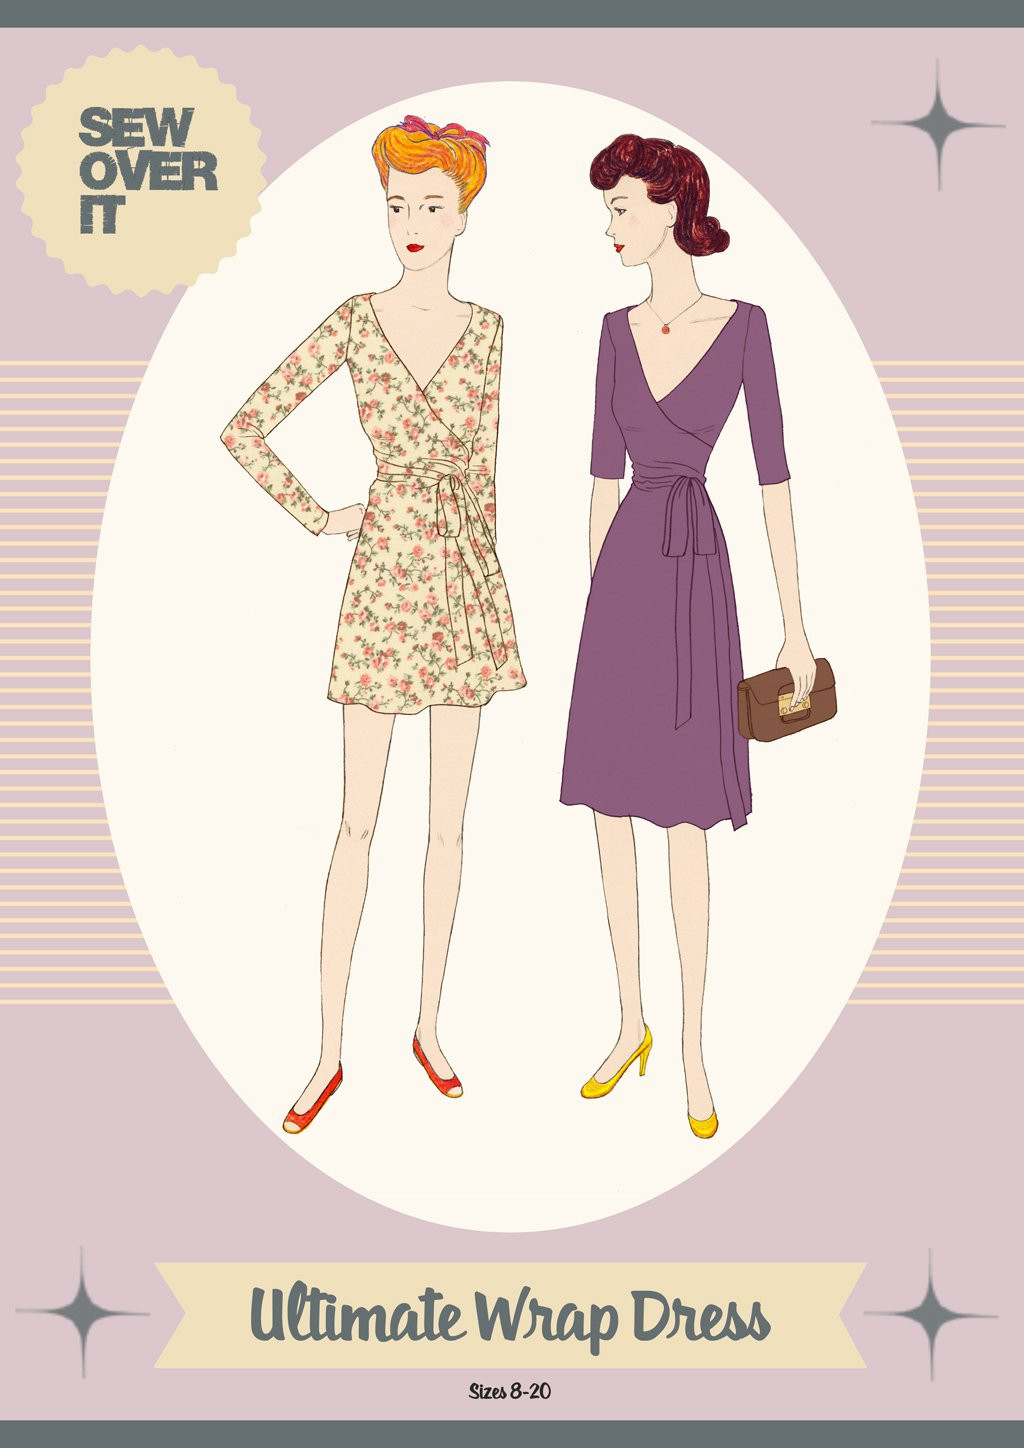 Sew Over It Ultimate Wrap Dress Downloadable Pattern